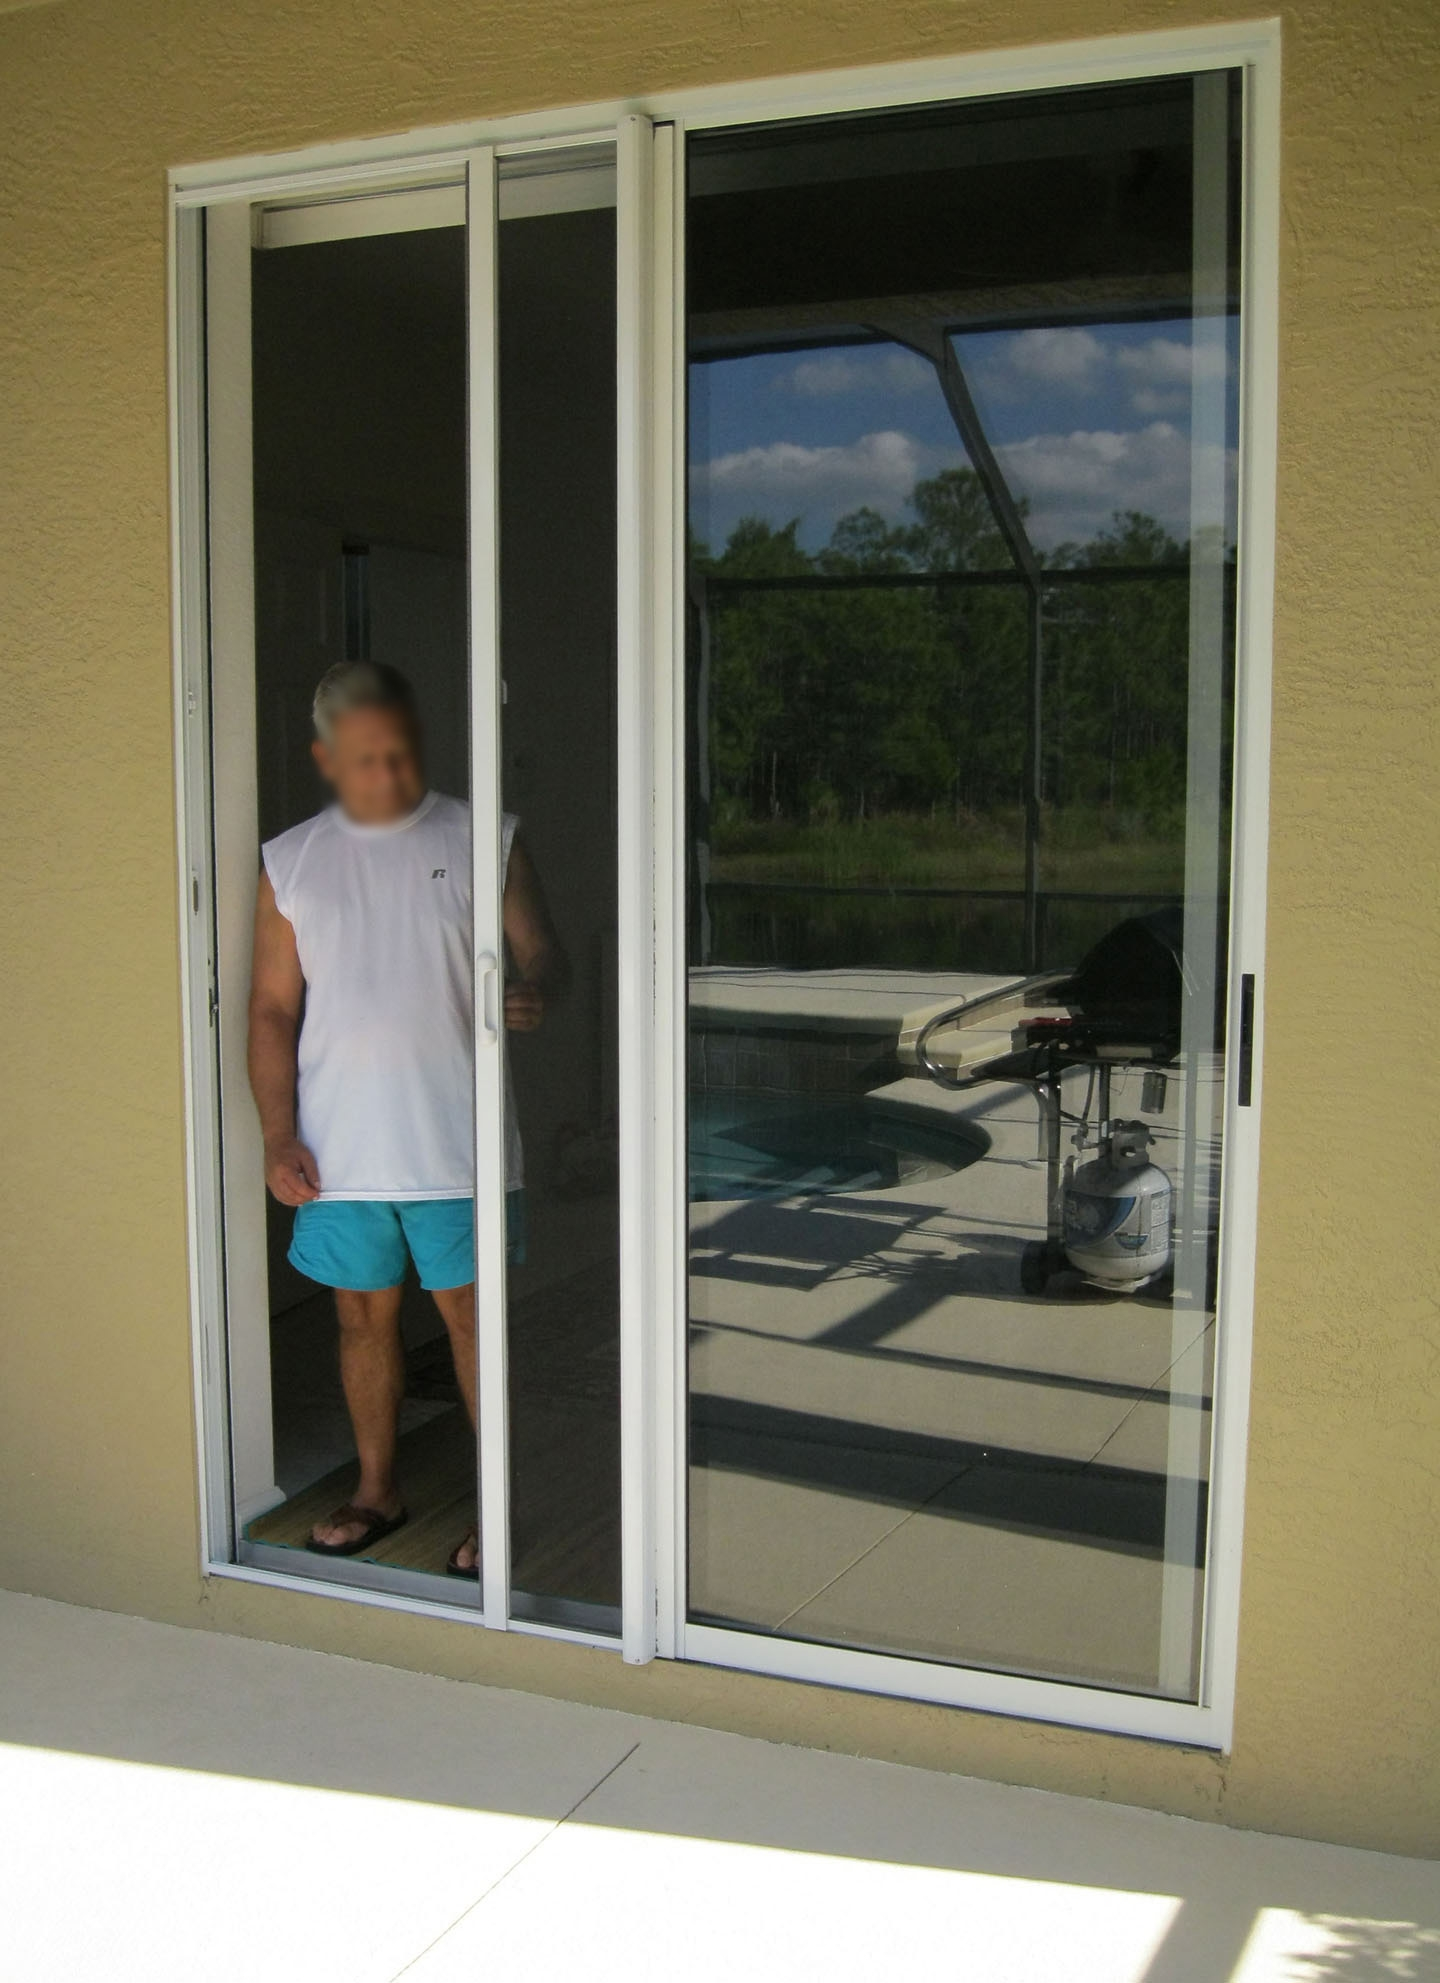 retractable screens for sliding glass doors sliding doors On retractable screens for bifold doors